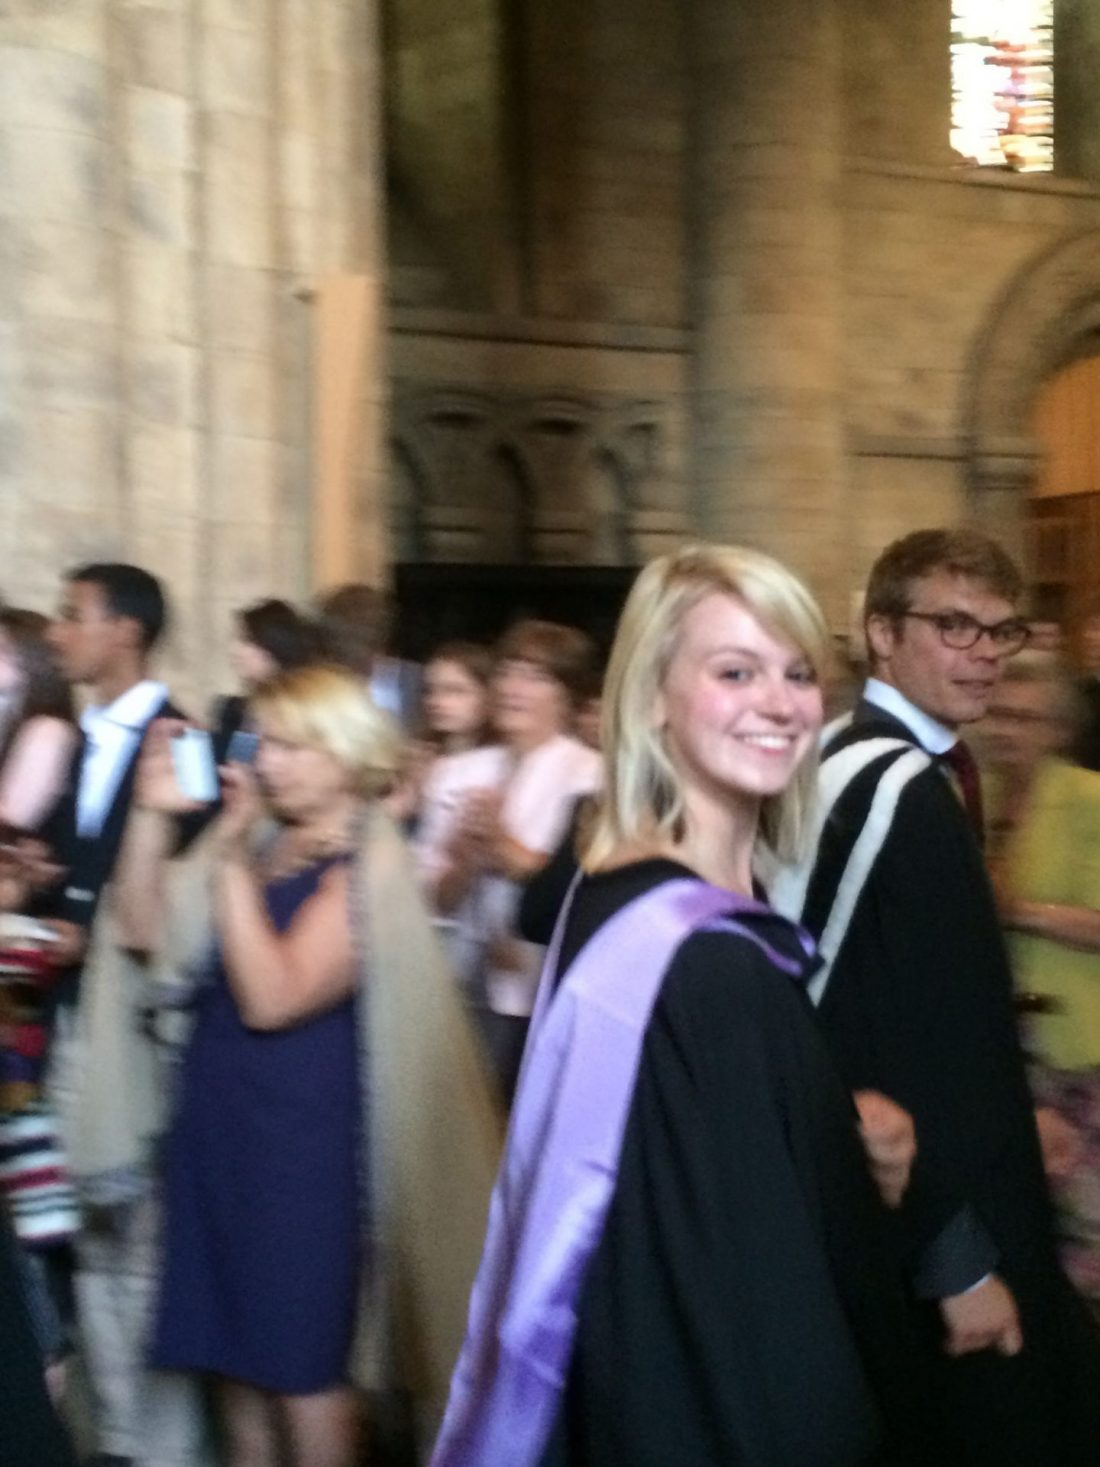 In the graduation congregation